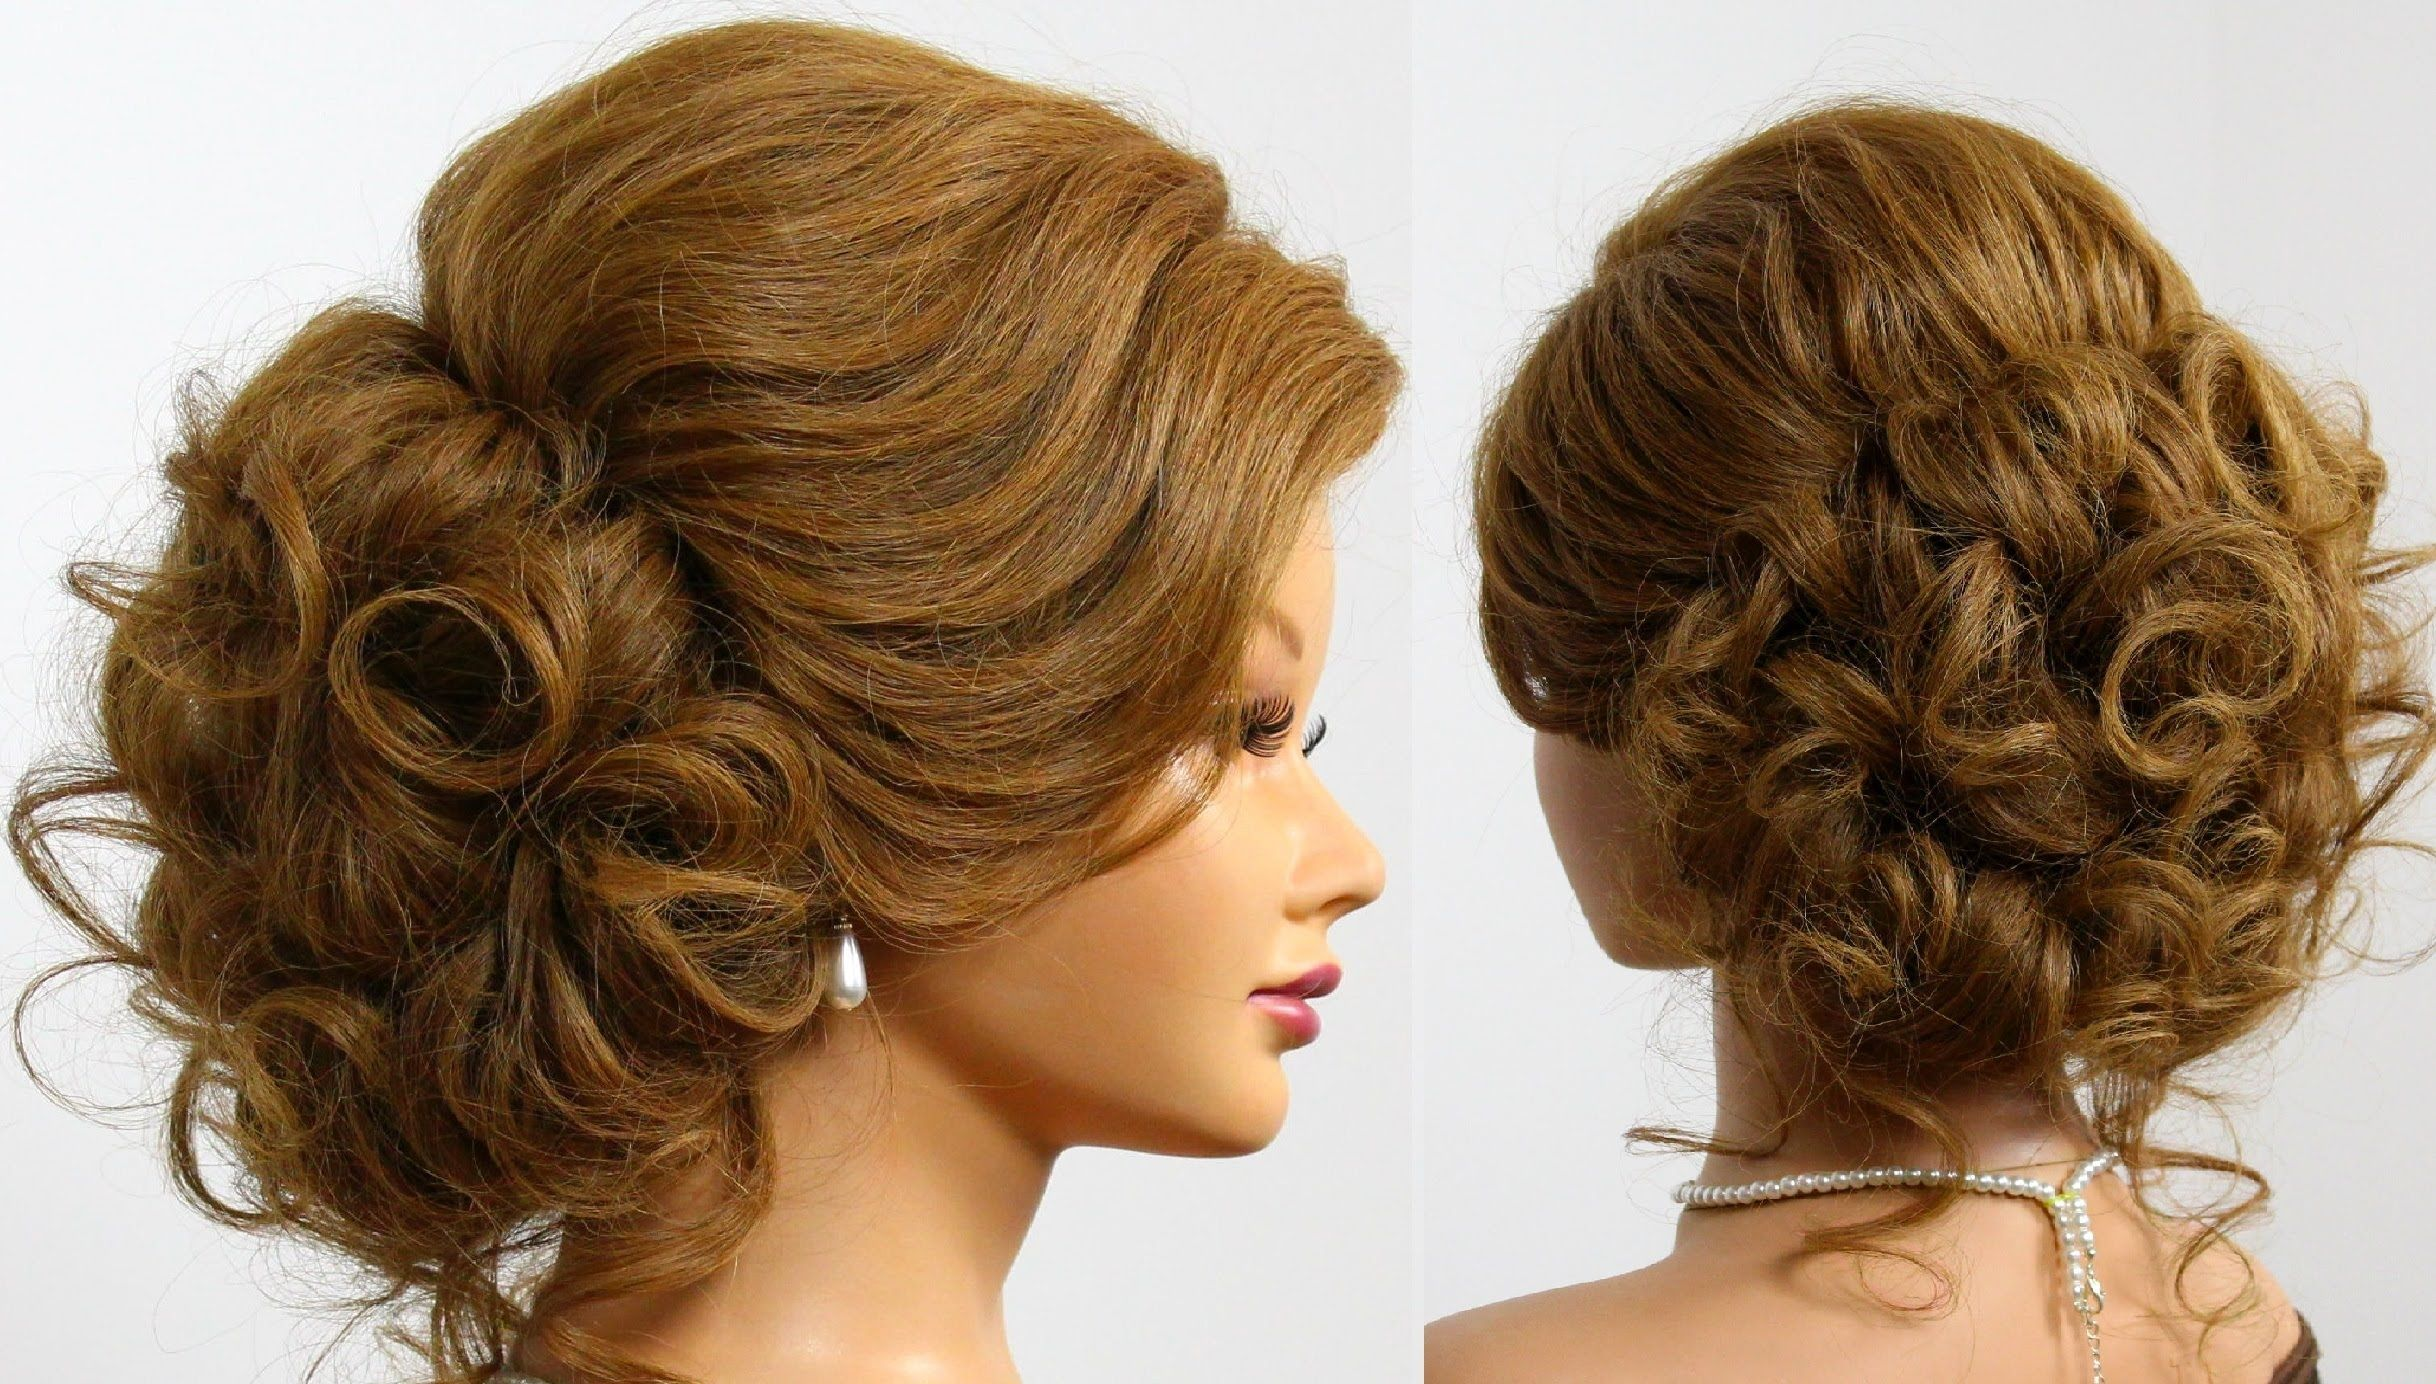 Wedding hairstyles for long hair tutorial prom updo wedding hair